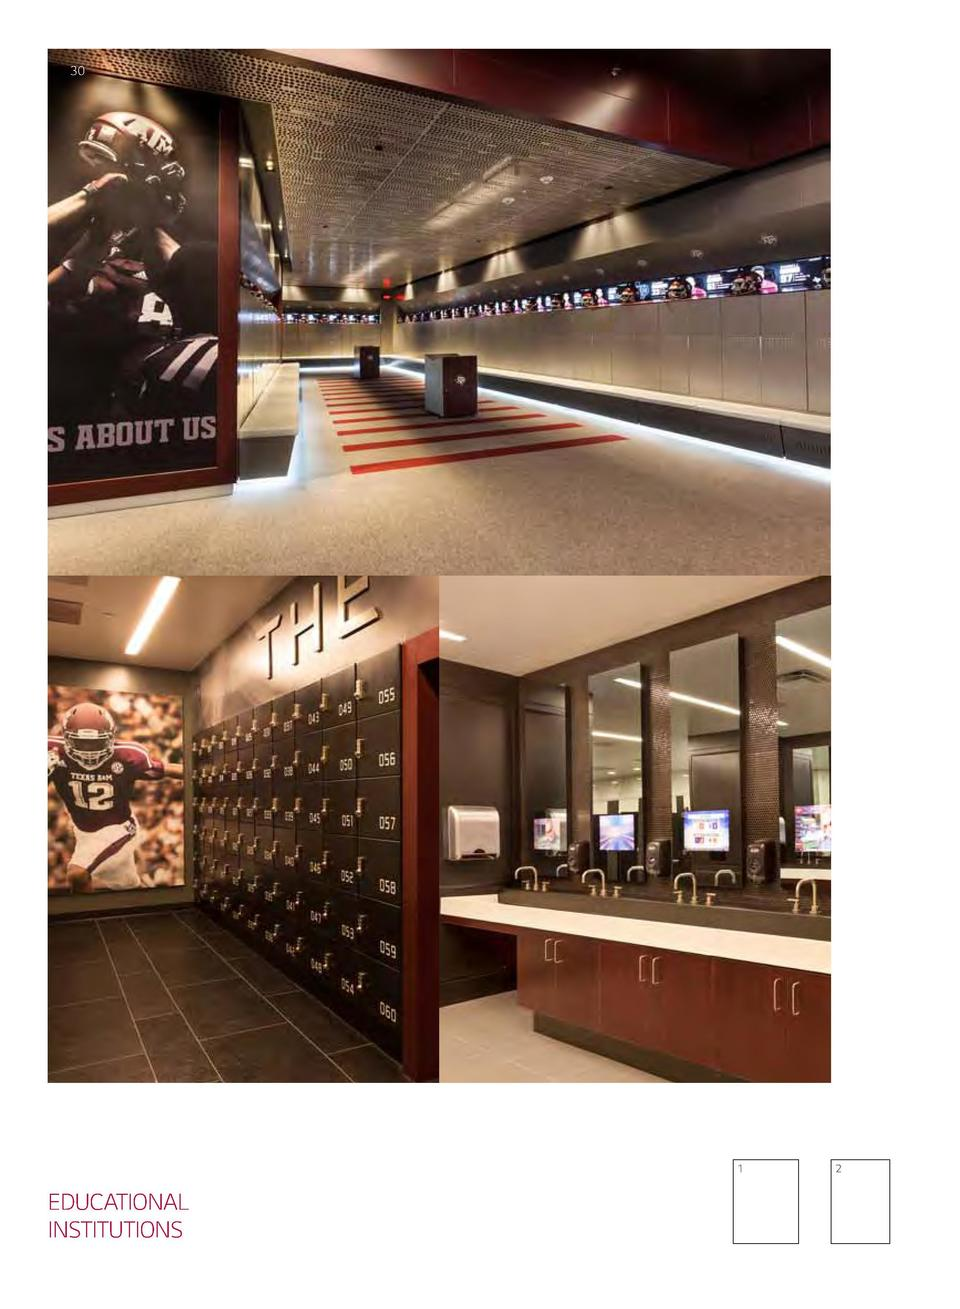 30  31  1  EDUCATIONAL INSTITUTIONS  2  1, 2 Texas A M Locker Room Design  Alan Bossert Fabrication  Hollman Inc, Counters...